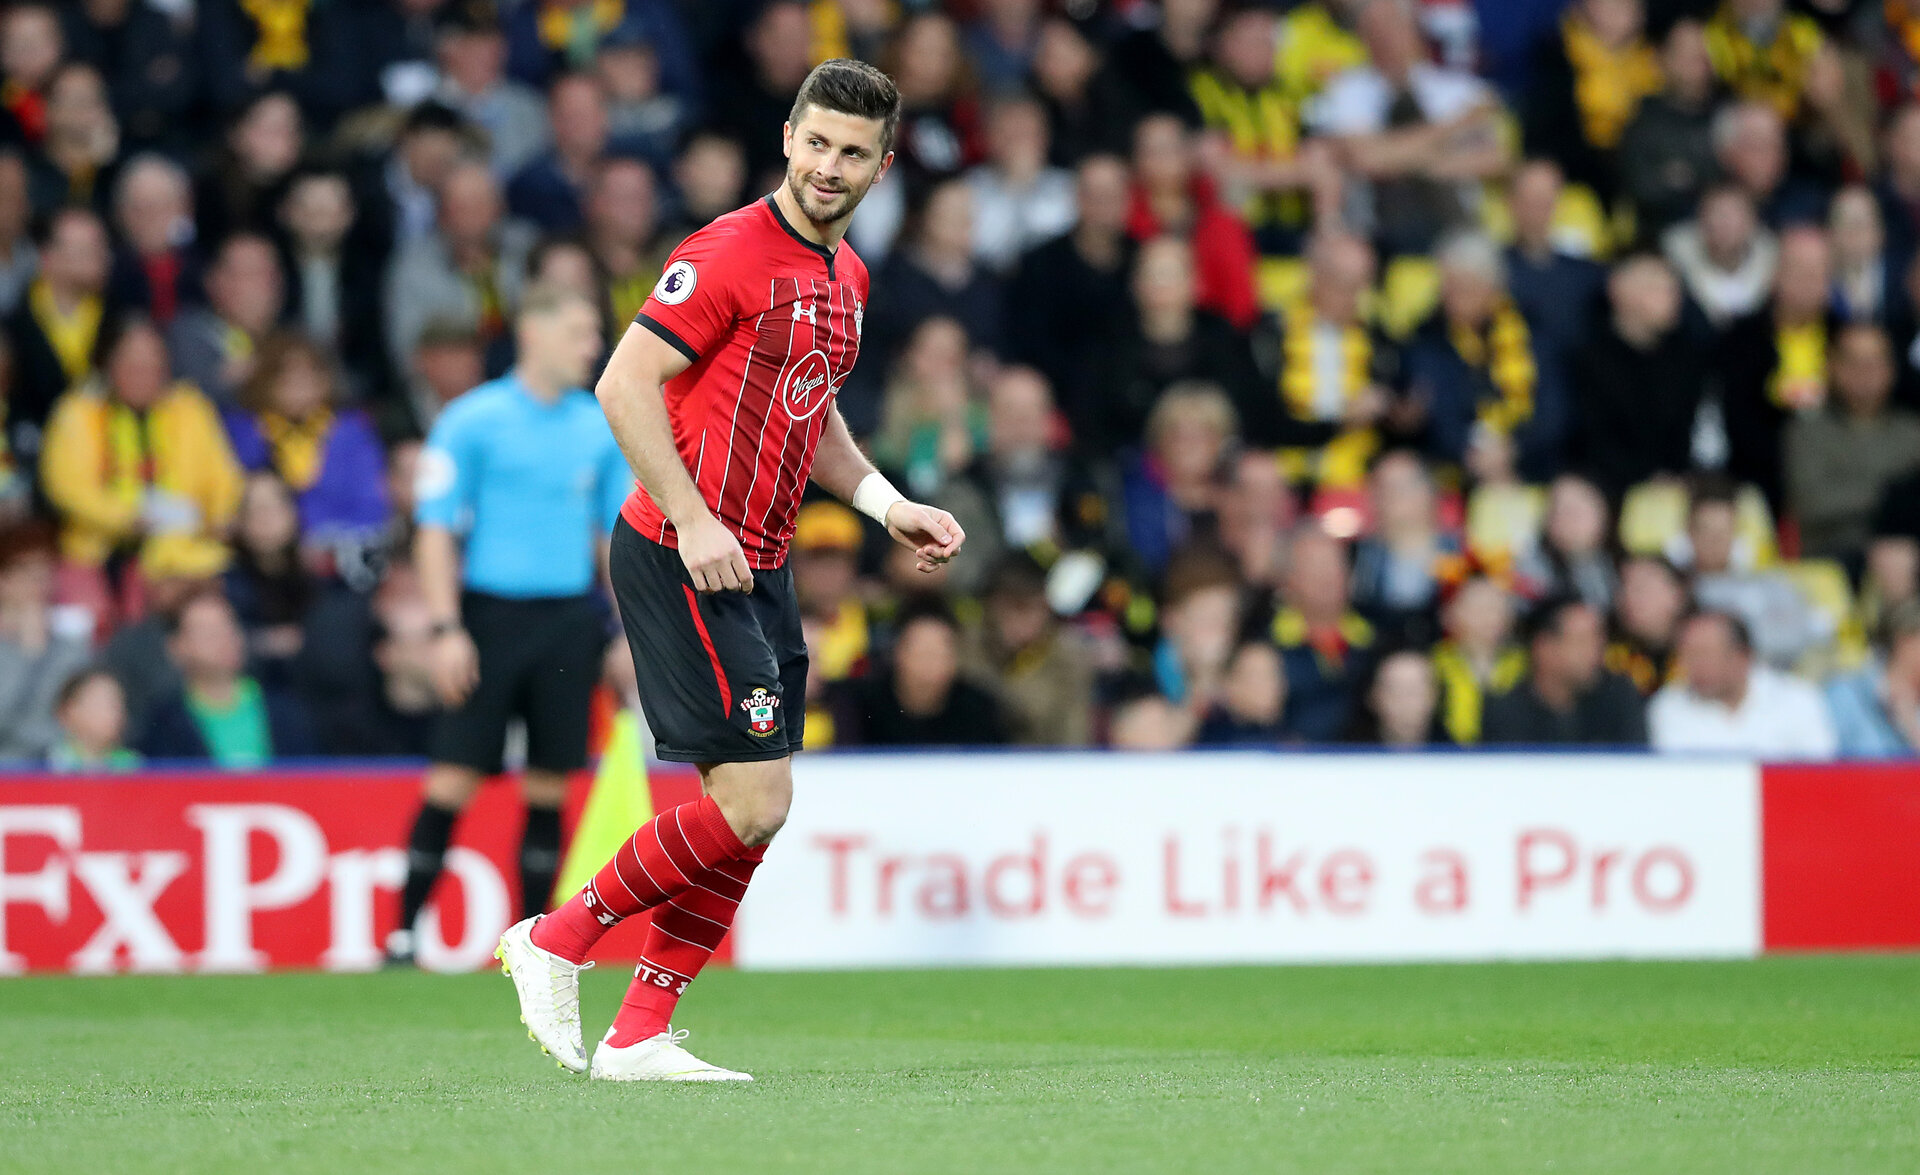 WATFORD, ENGLAND - APRIL 23: Shane Long of Southampton after opening the scoring during the Premier League match between Watford FC and Southampton FC at Vicarage Road on April 23, 2019 in Watford, United Kingdom. (Photo by Matt Watson/Southampton FC via Getty Images)